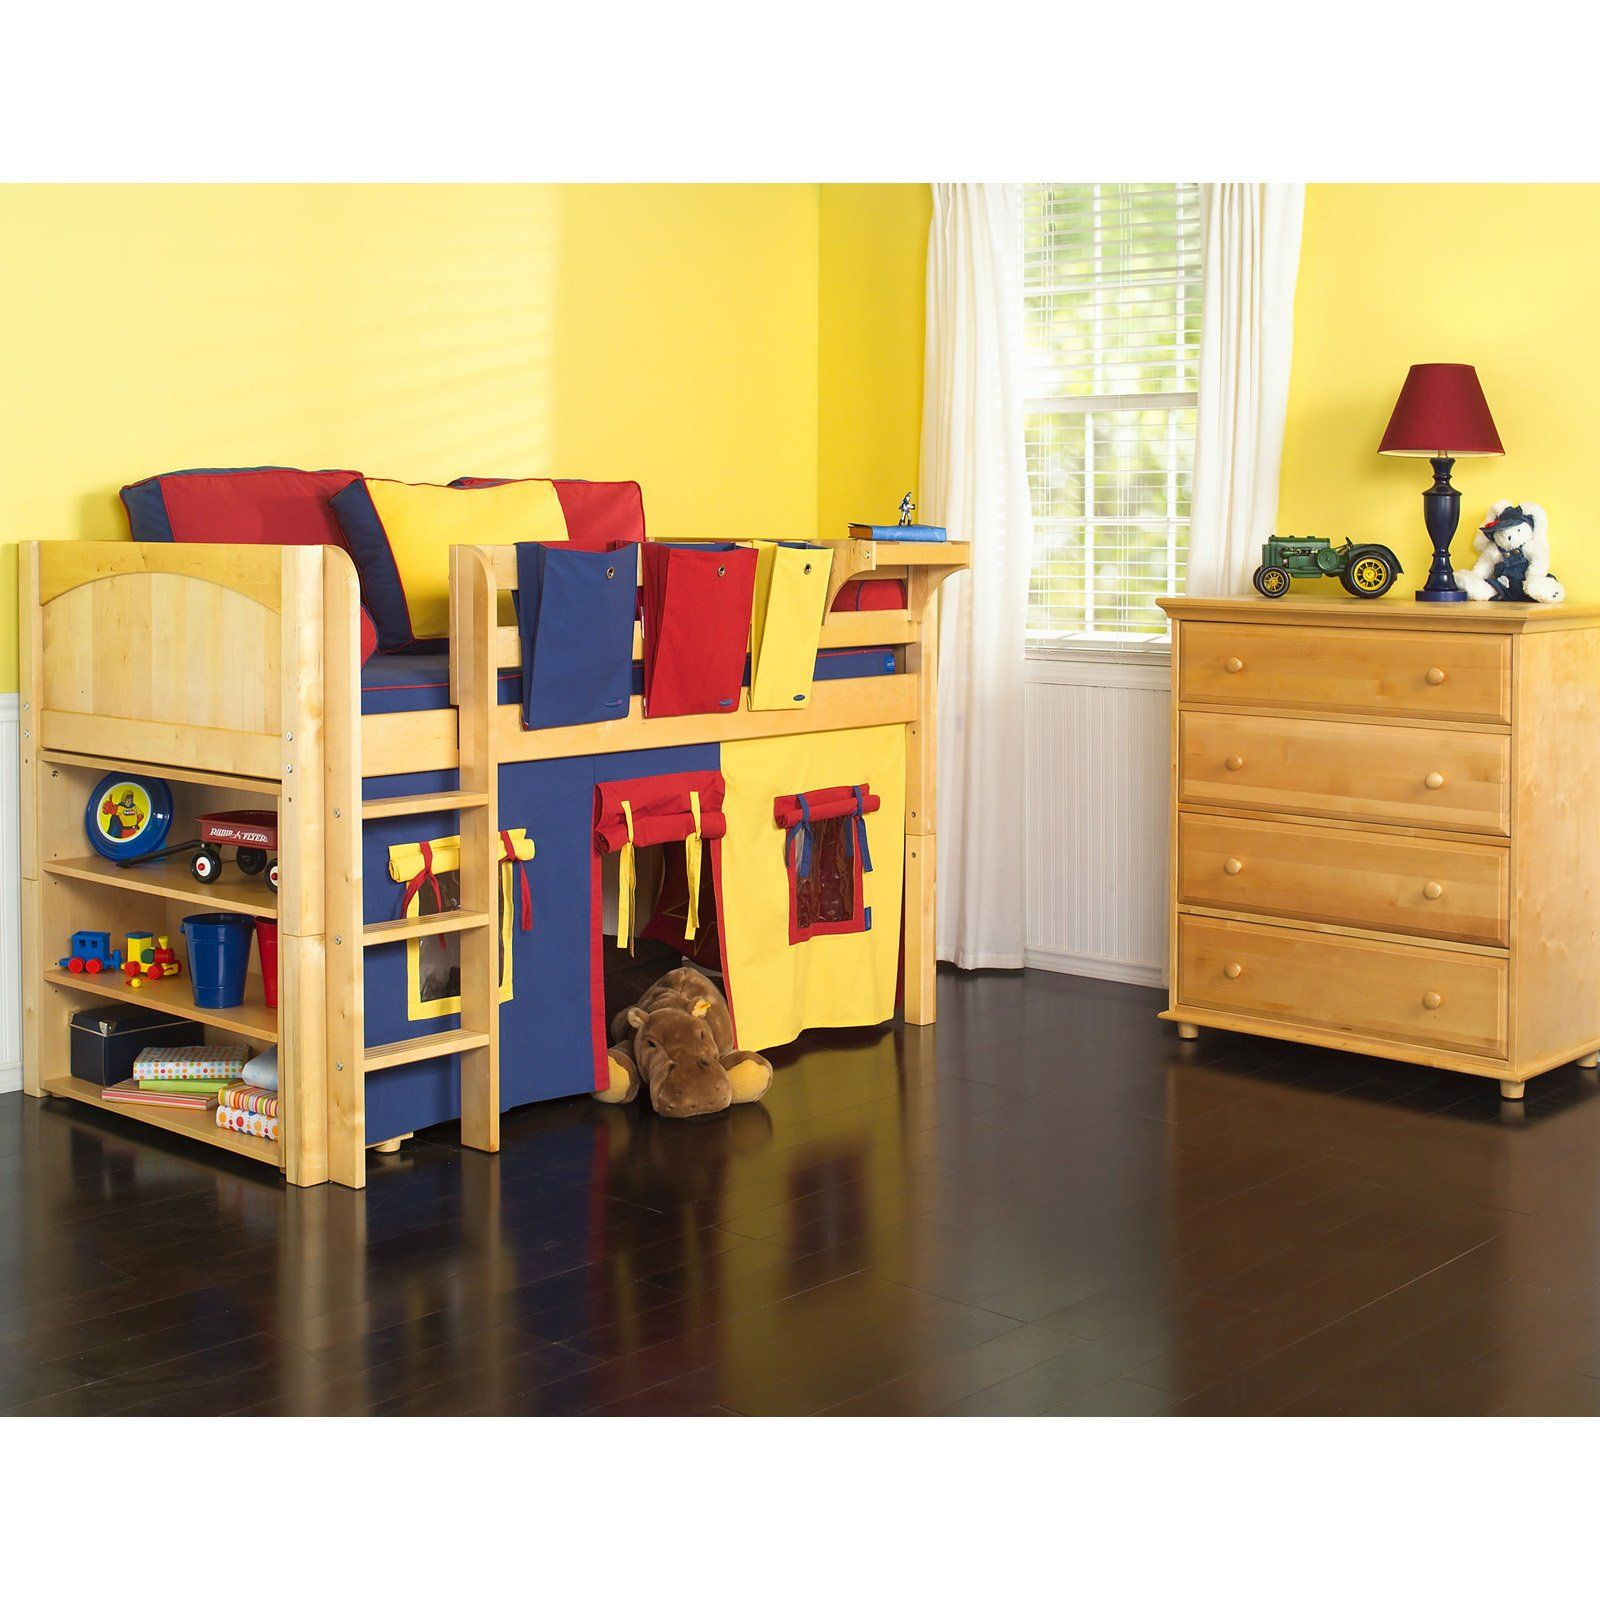 Twin low loft bed with slide  Have to have it Low Rider Boy Tent Bed   Kidus spaces